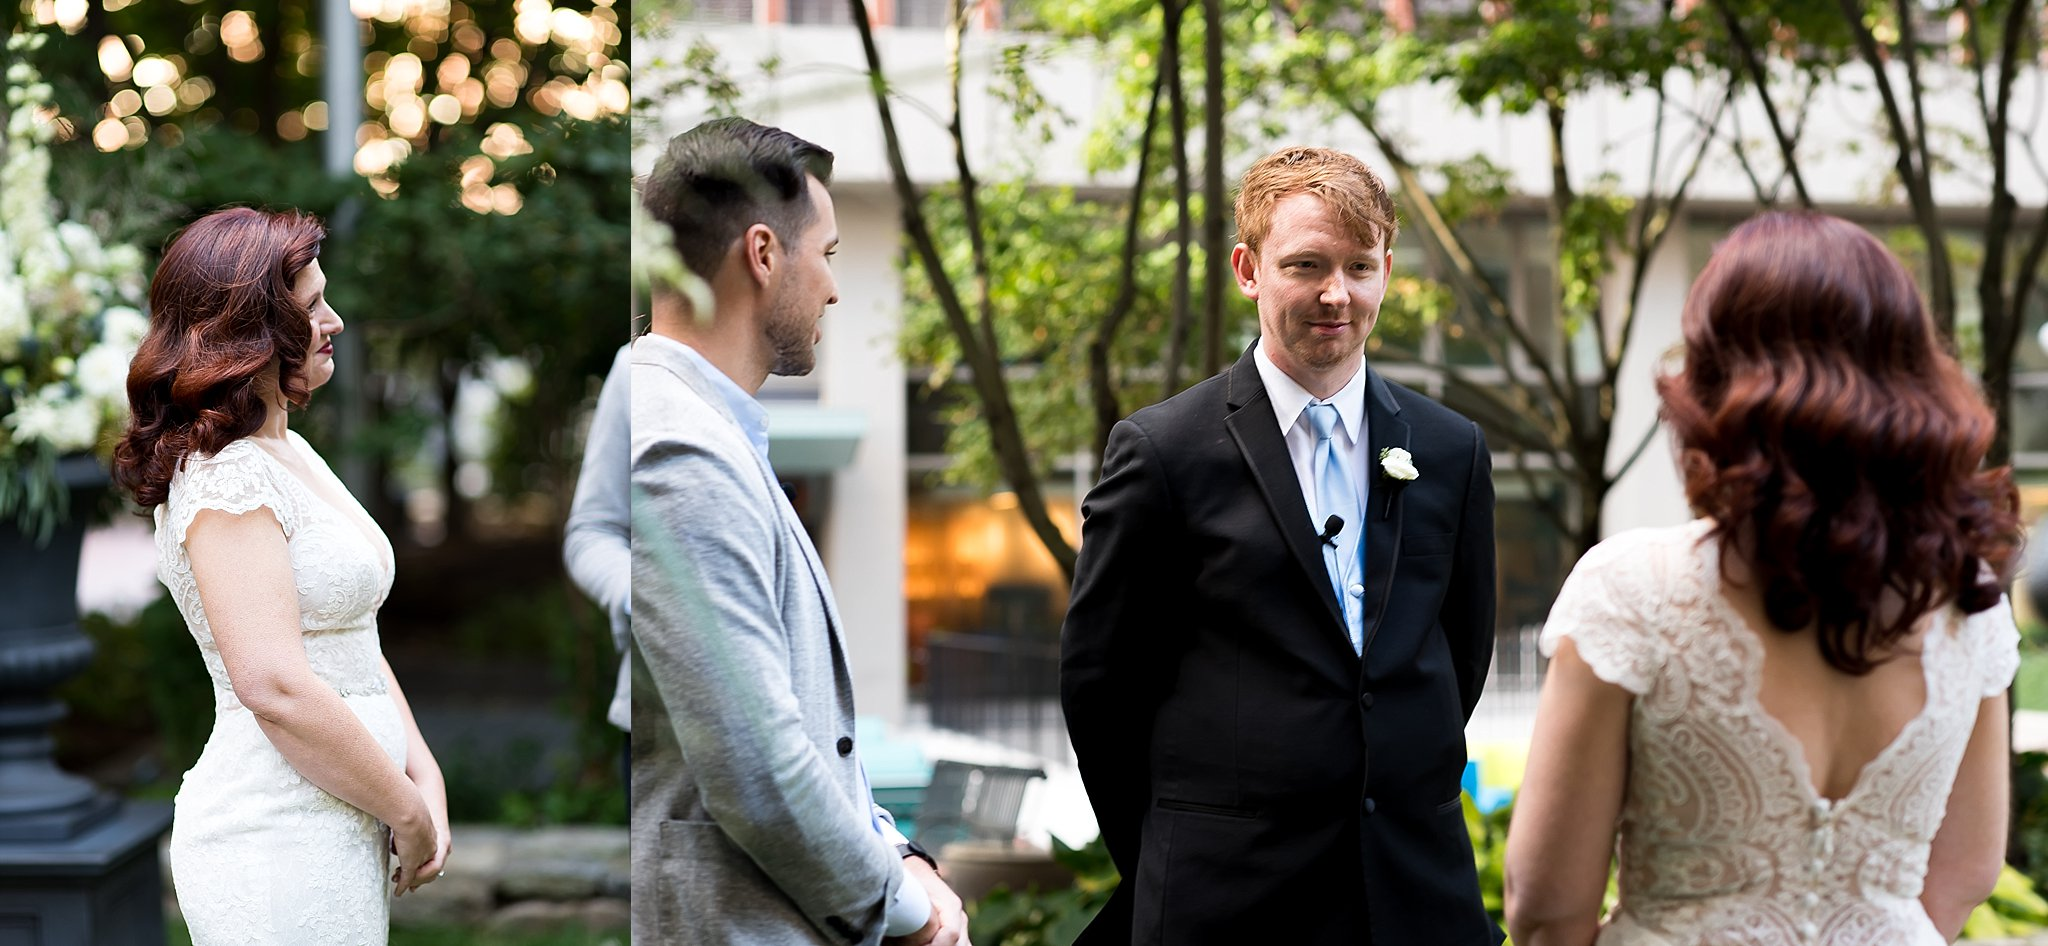 intimate_outdoor_wedding_in_boston.jpg